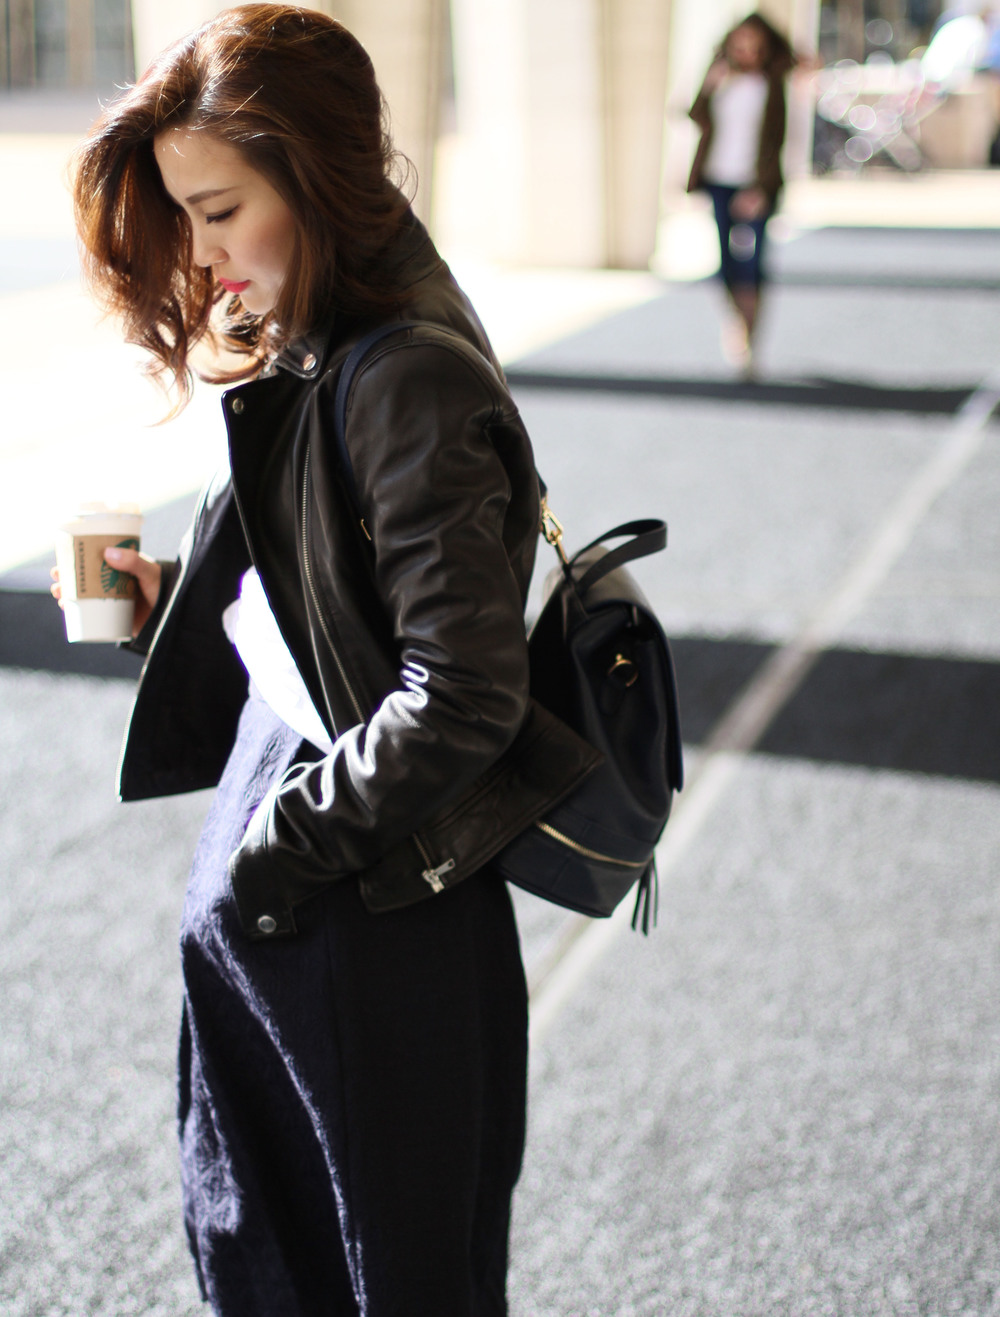 Navy Backpack leather jacket outfit 1.jpg